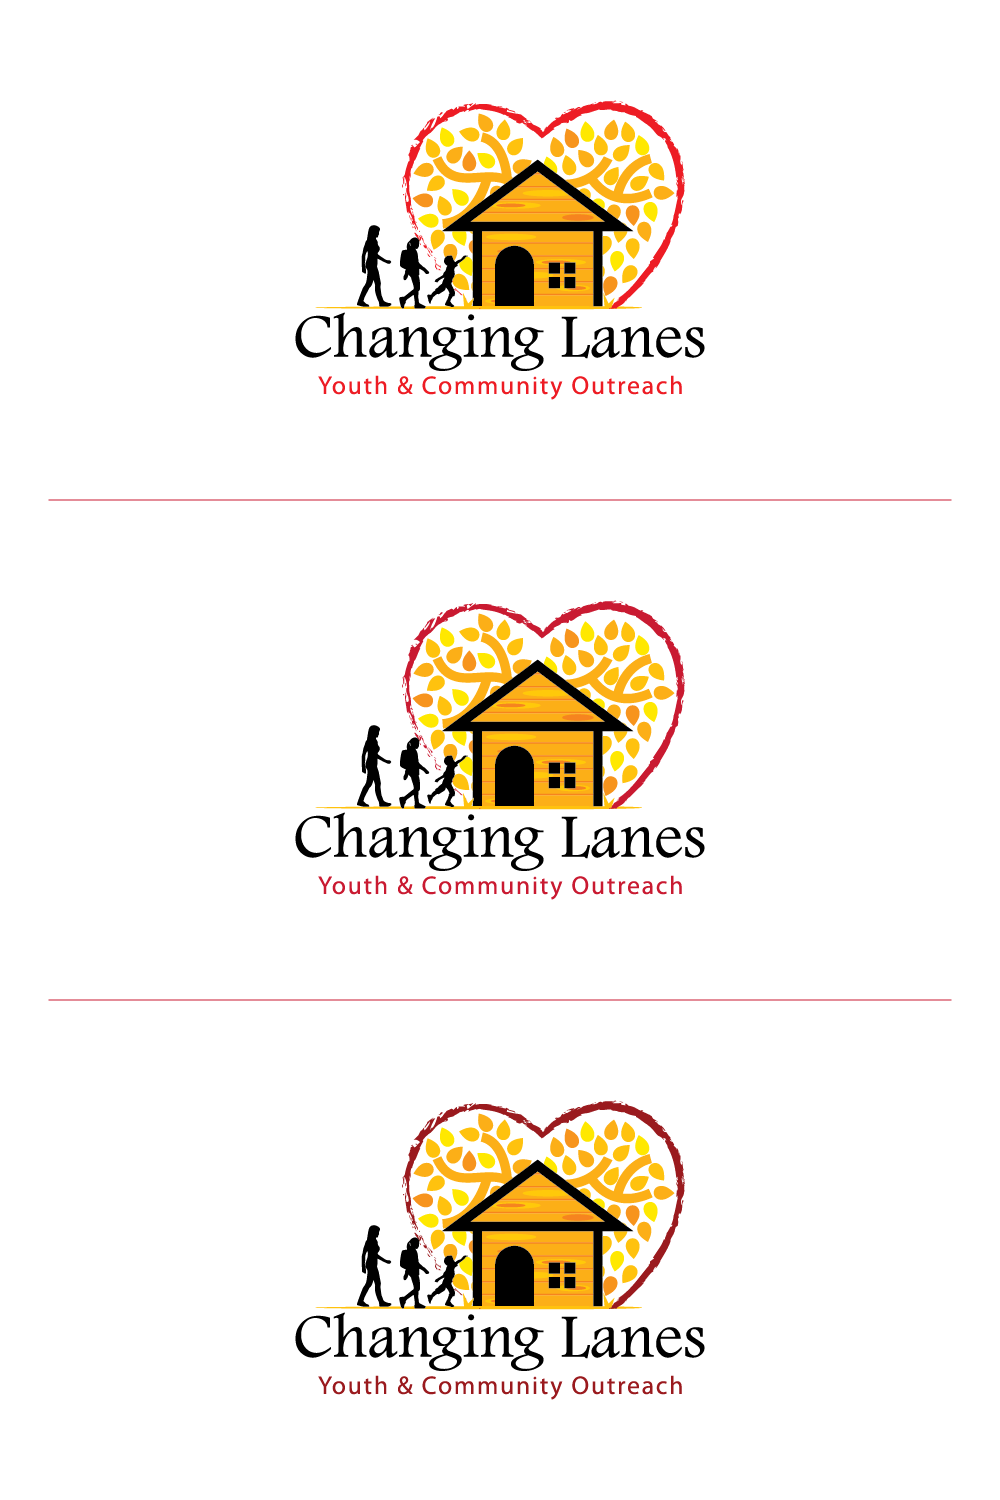 99nonprofits winner! Design first logo for non-profit helping moms and kids in need of housing and food